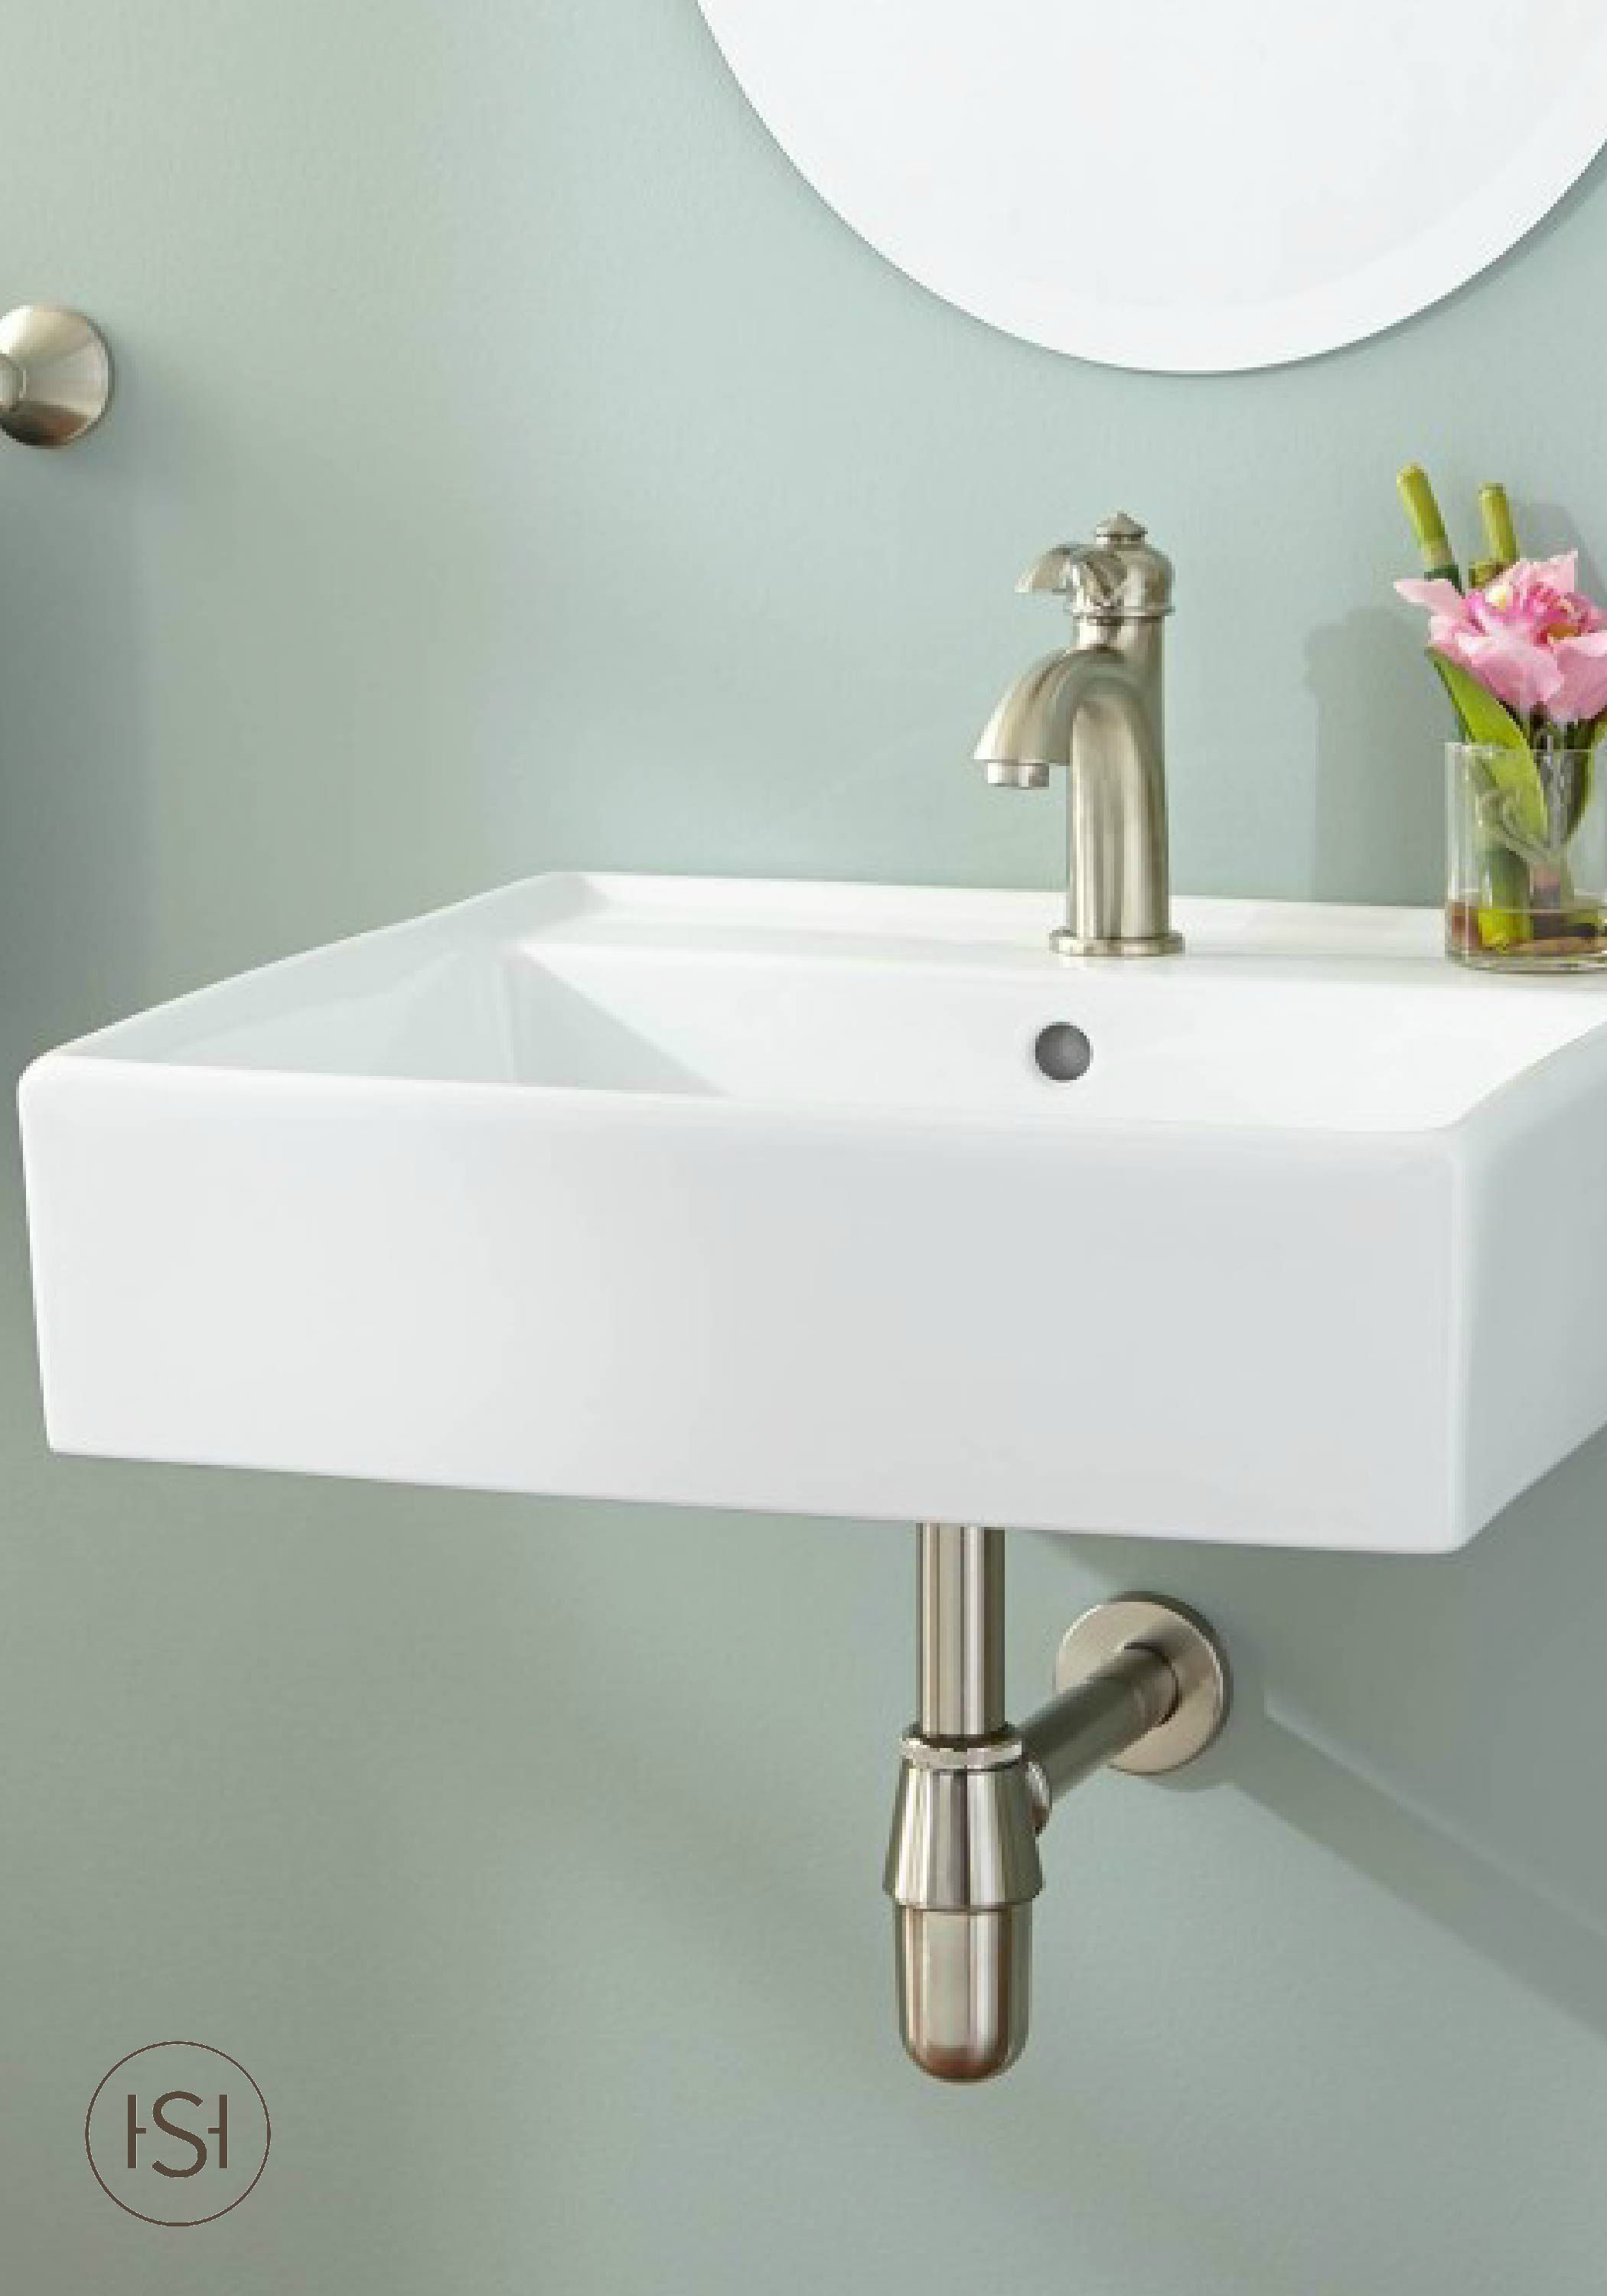 Decorate Your Half or Guest Bath with An Elegant Wall Mount Sink